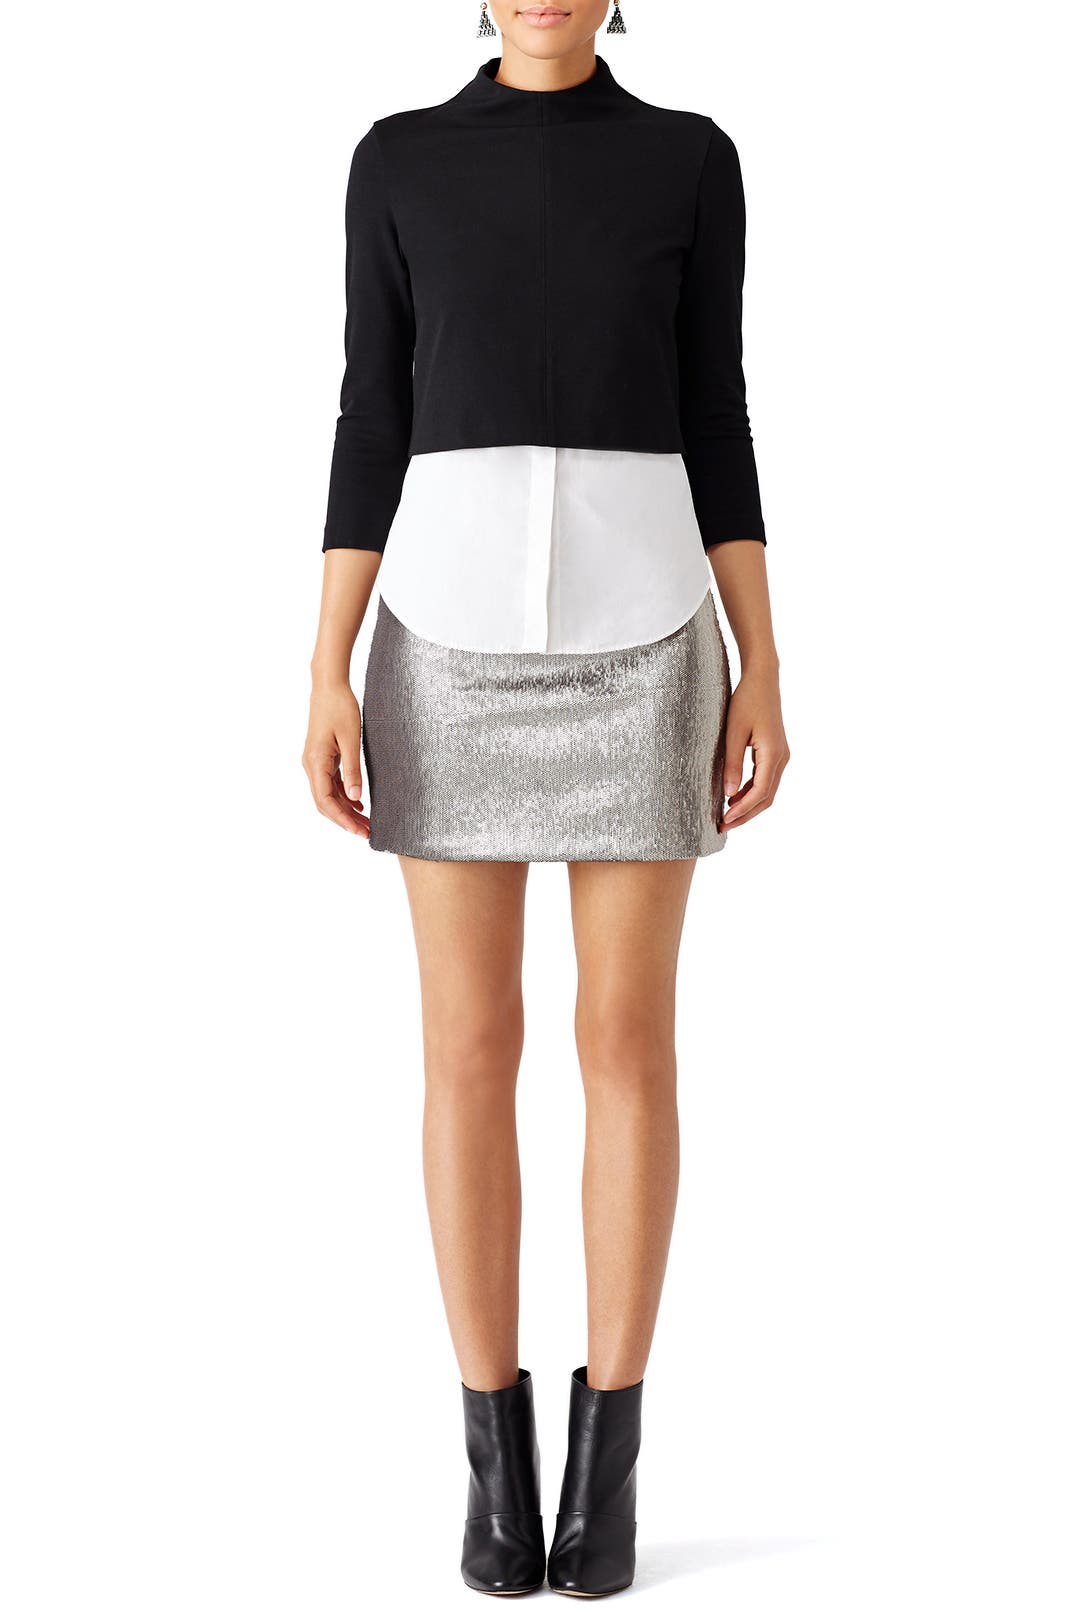 Silver Sequin Mini Skirt By Halston Heritage For 45